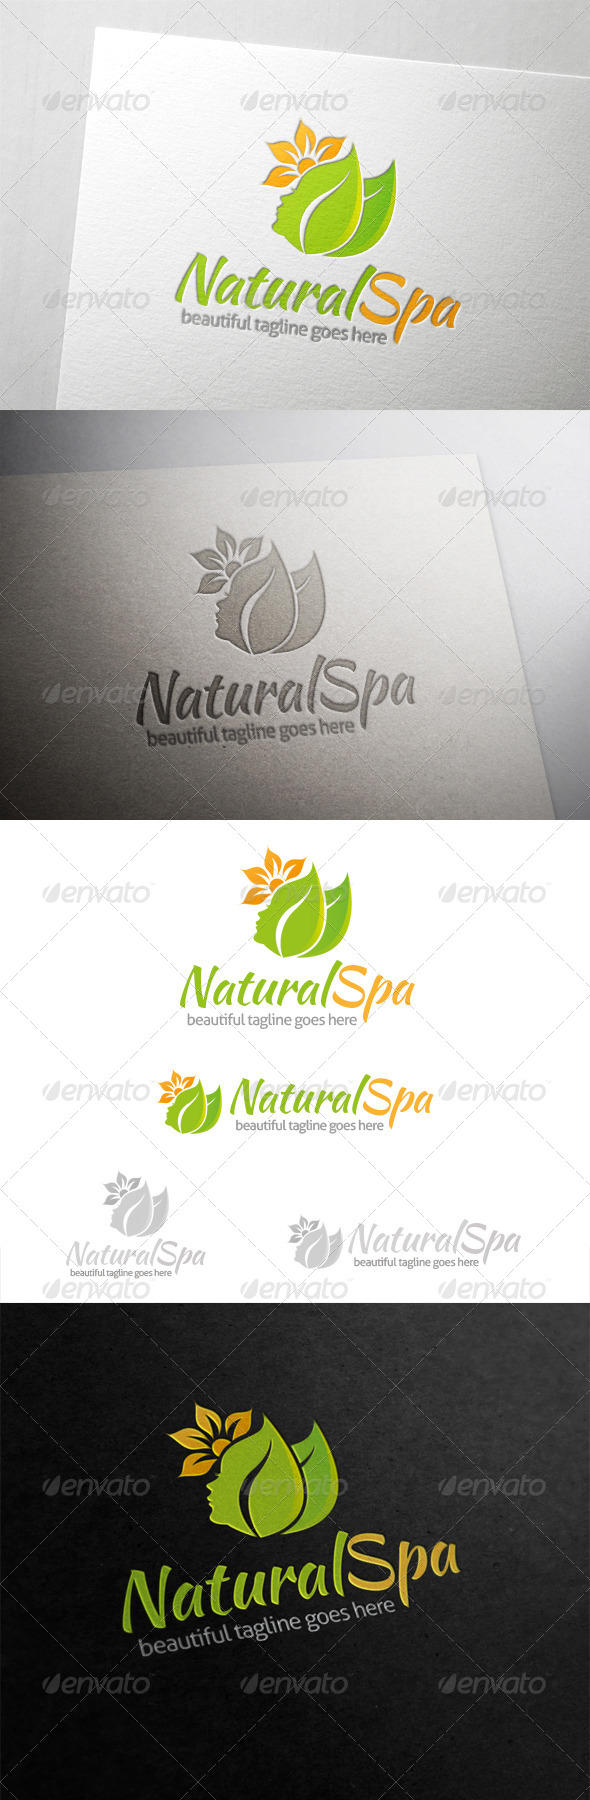 GraphicRiver Natural Spa Logo 6014654